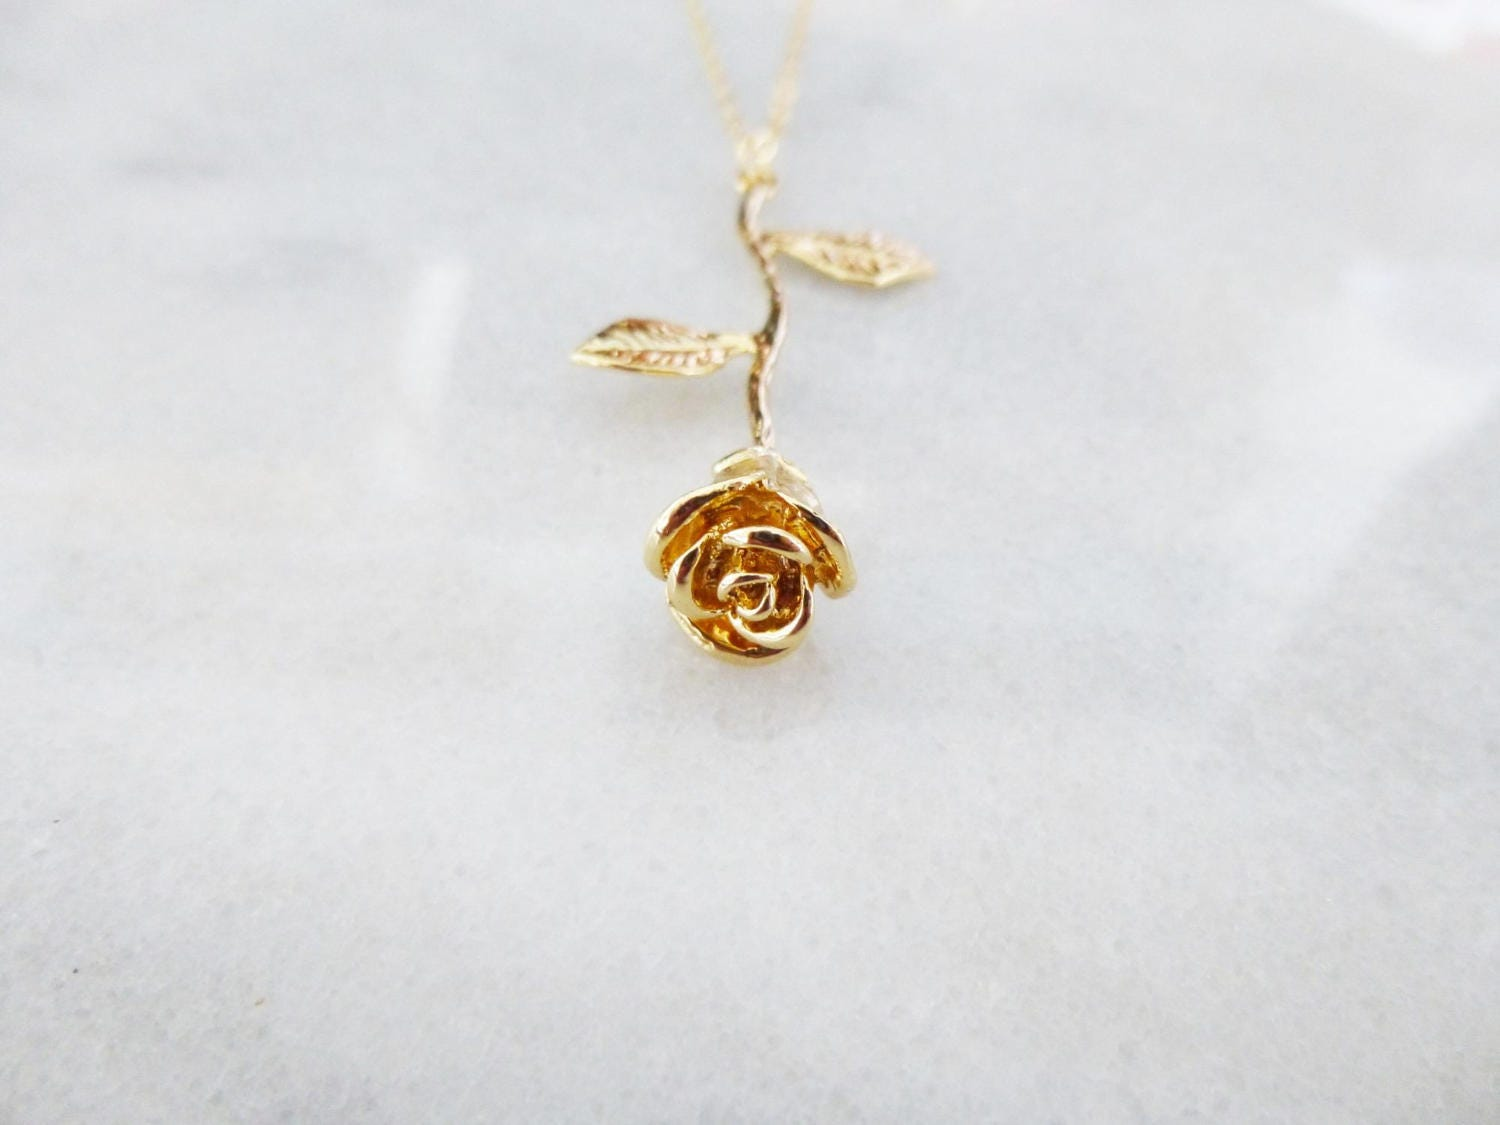 jewellery plated beauty disney red charm rosecharm and gold close rose ladies couture beast the necklace